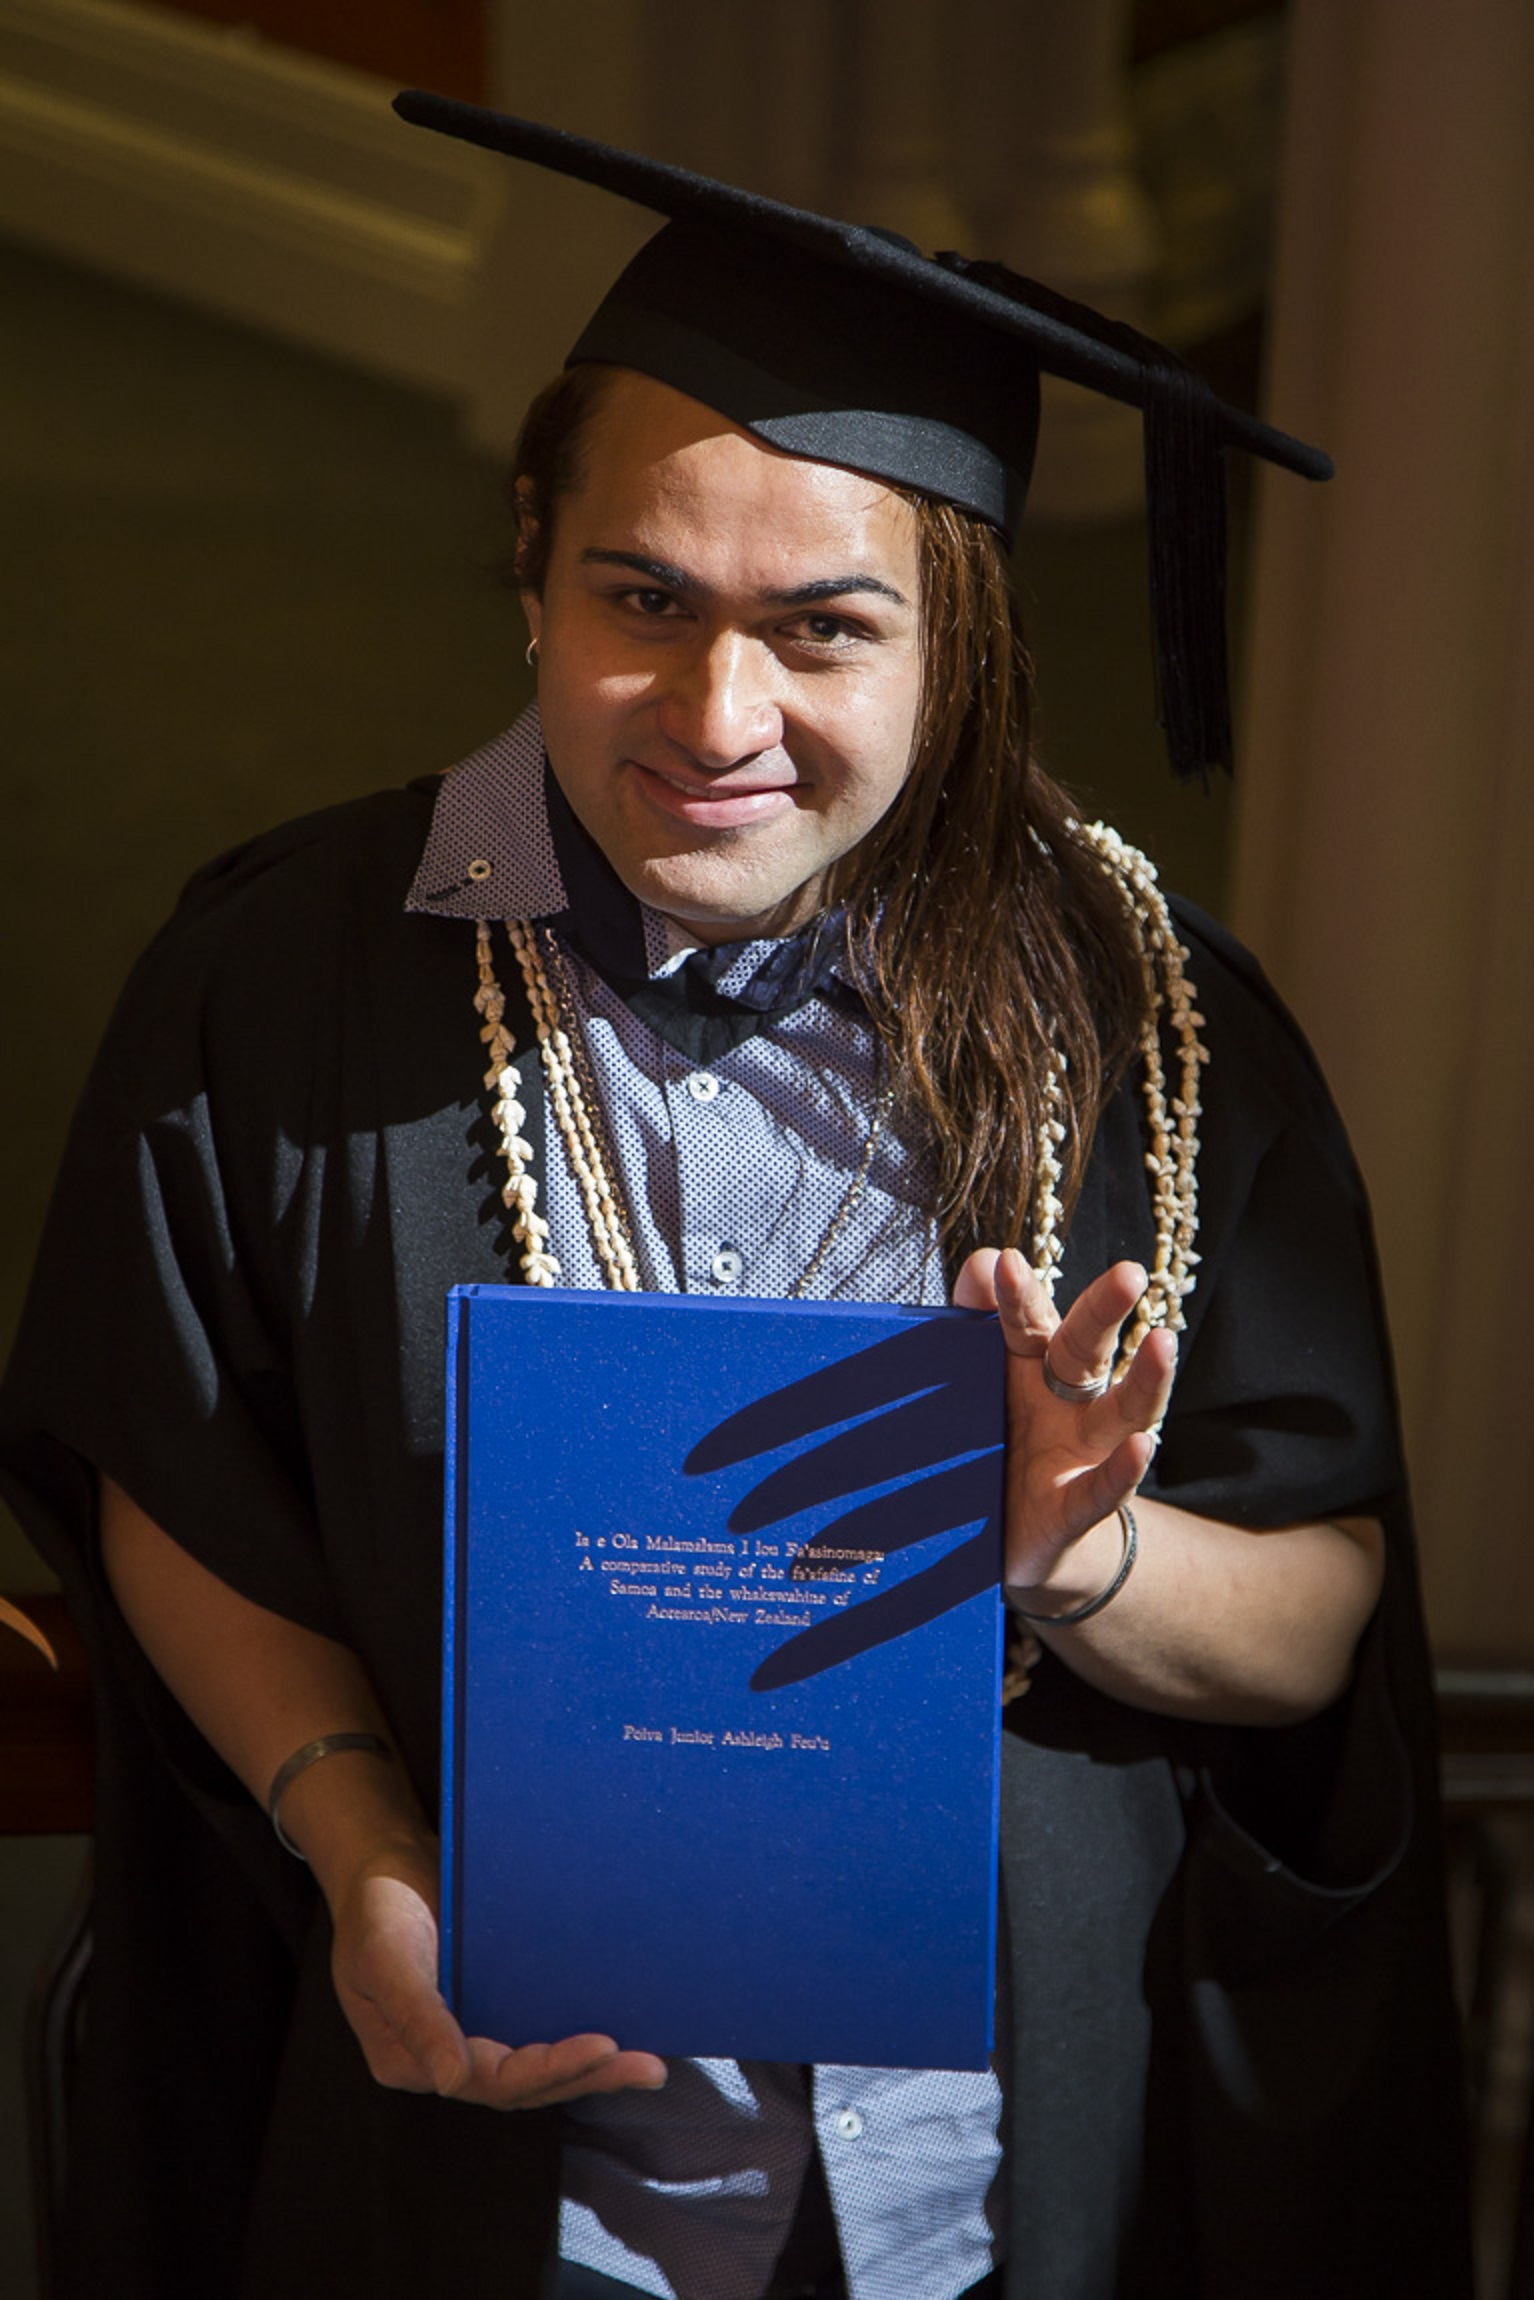 2014 Master of Arts graduation ceremony holding my thesis.